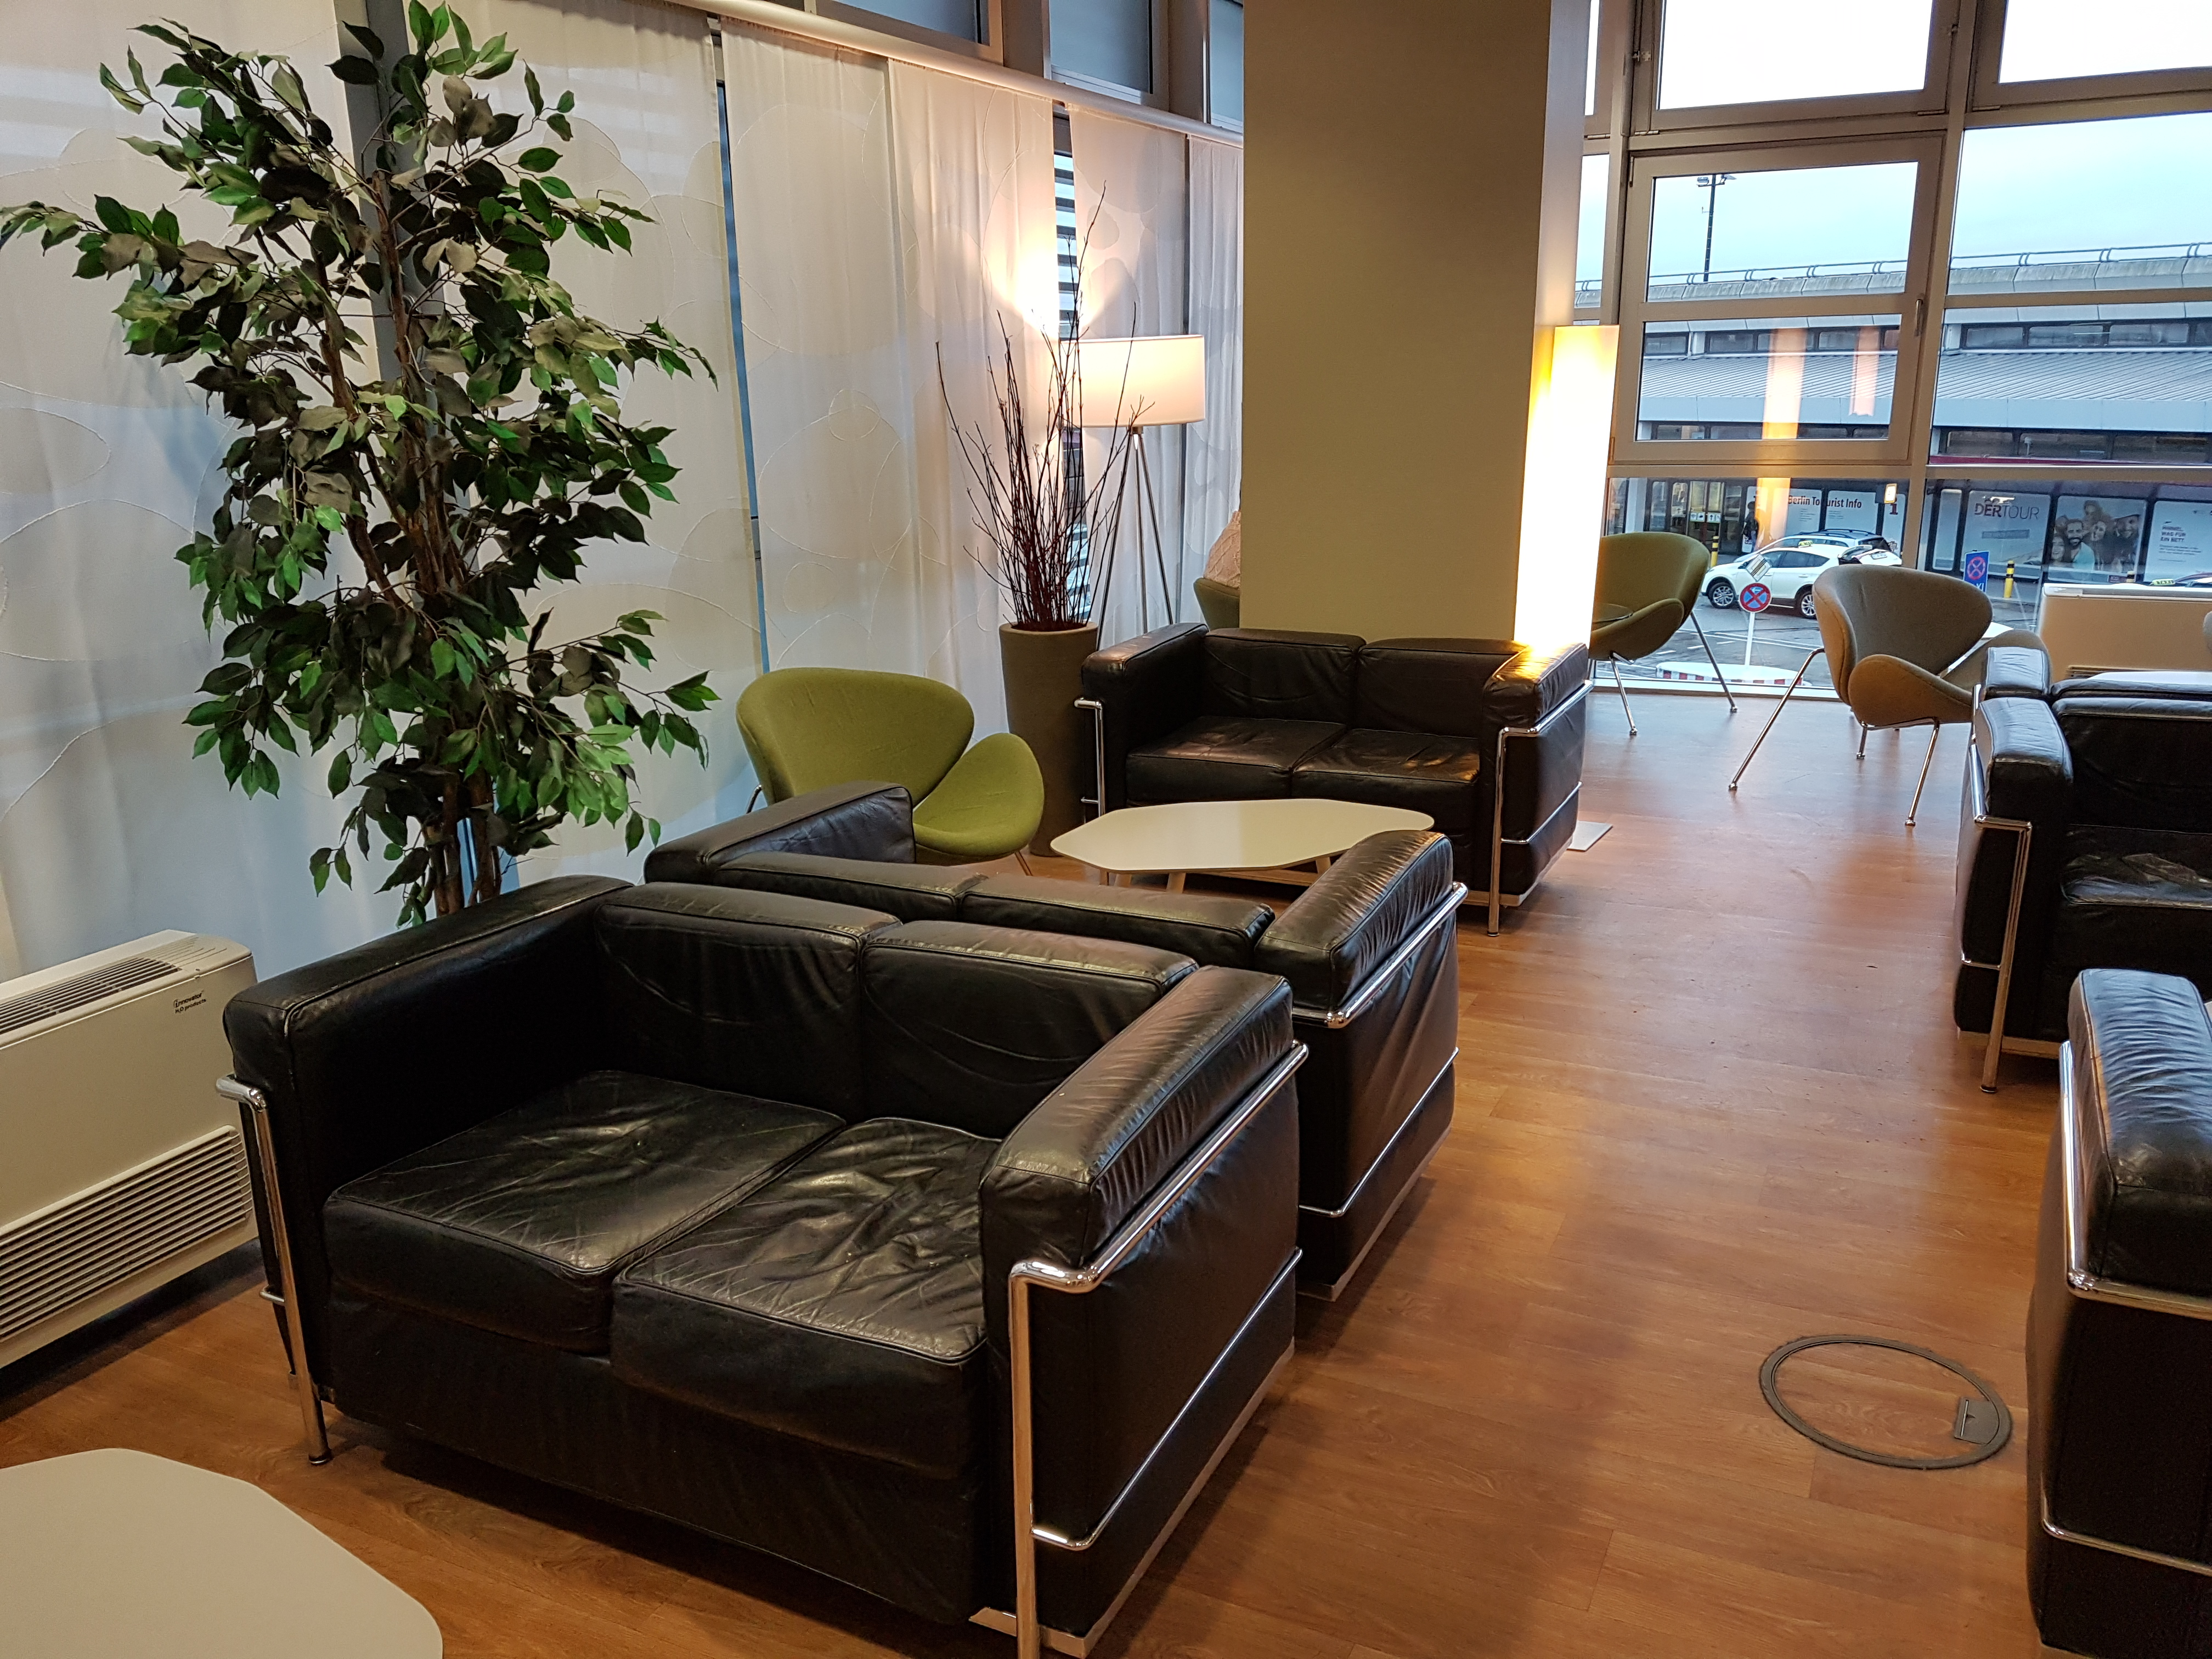 Berlin Airportclub lounge, placescases.com